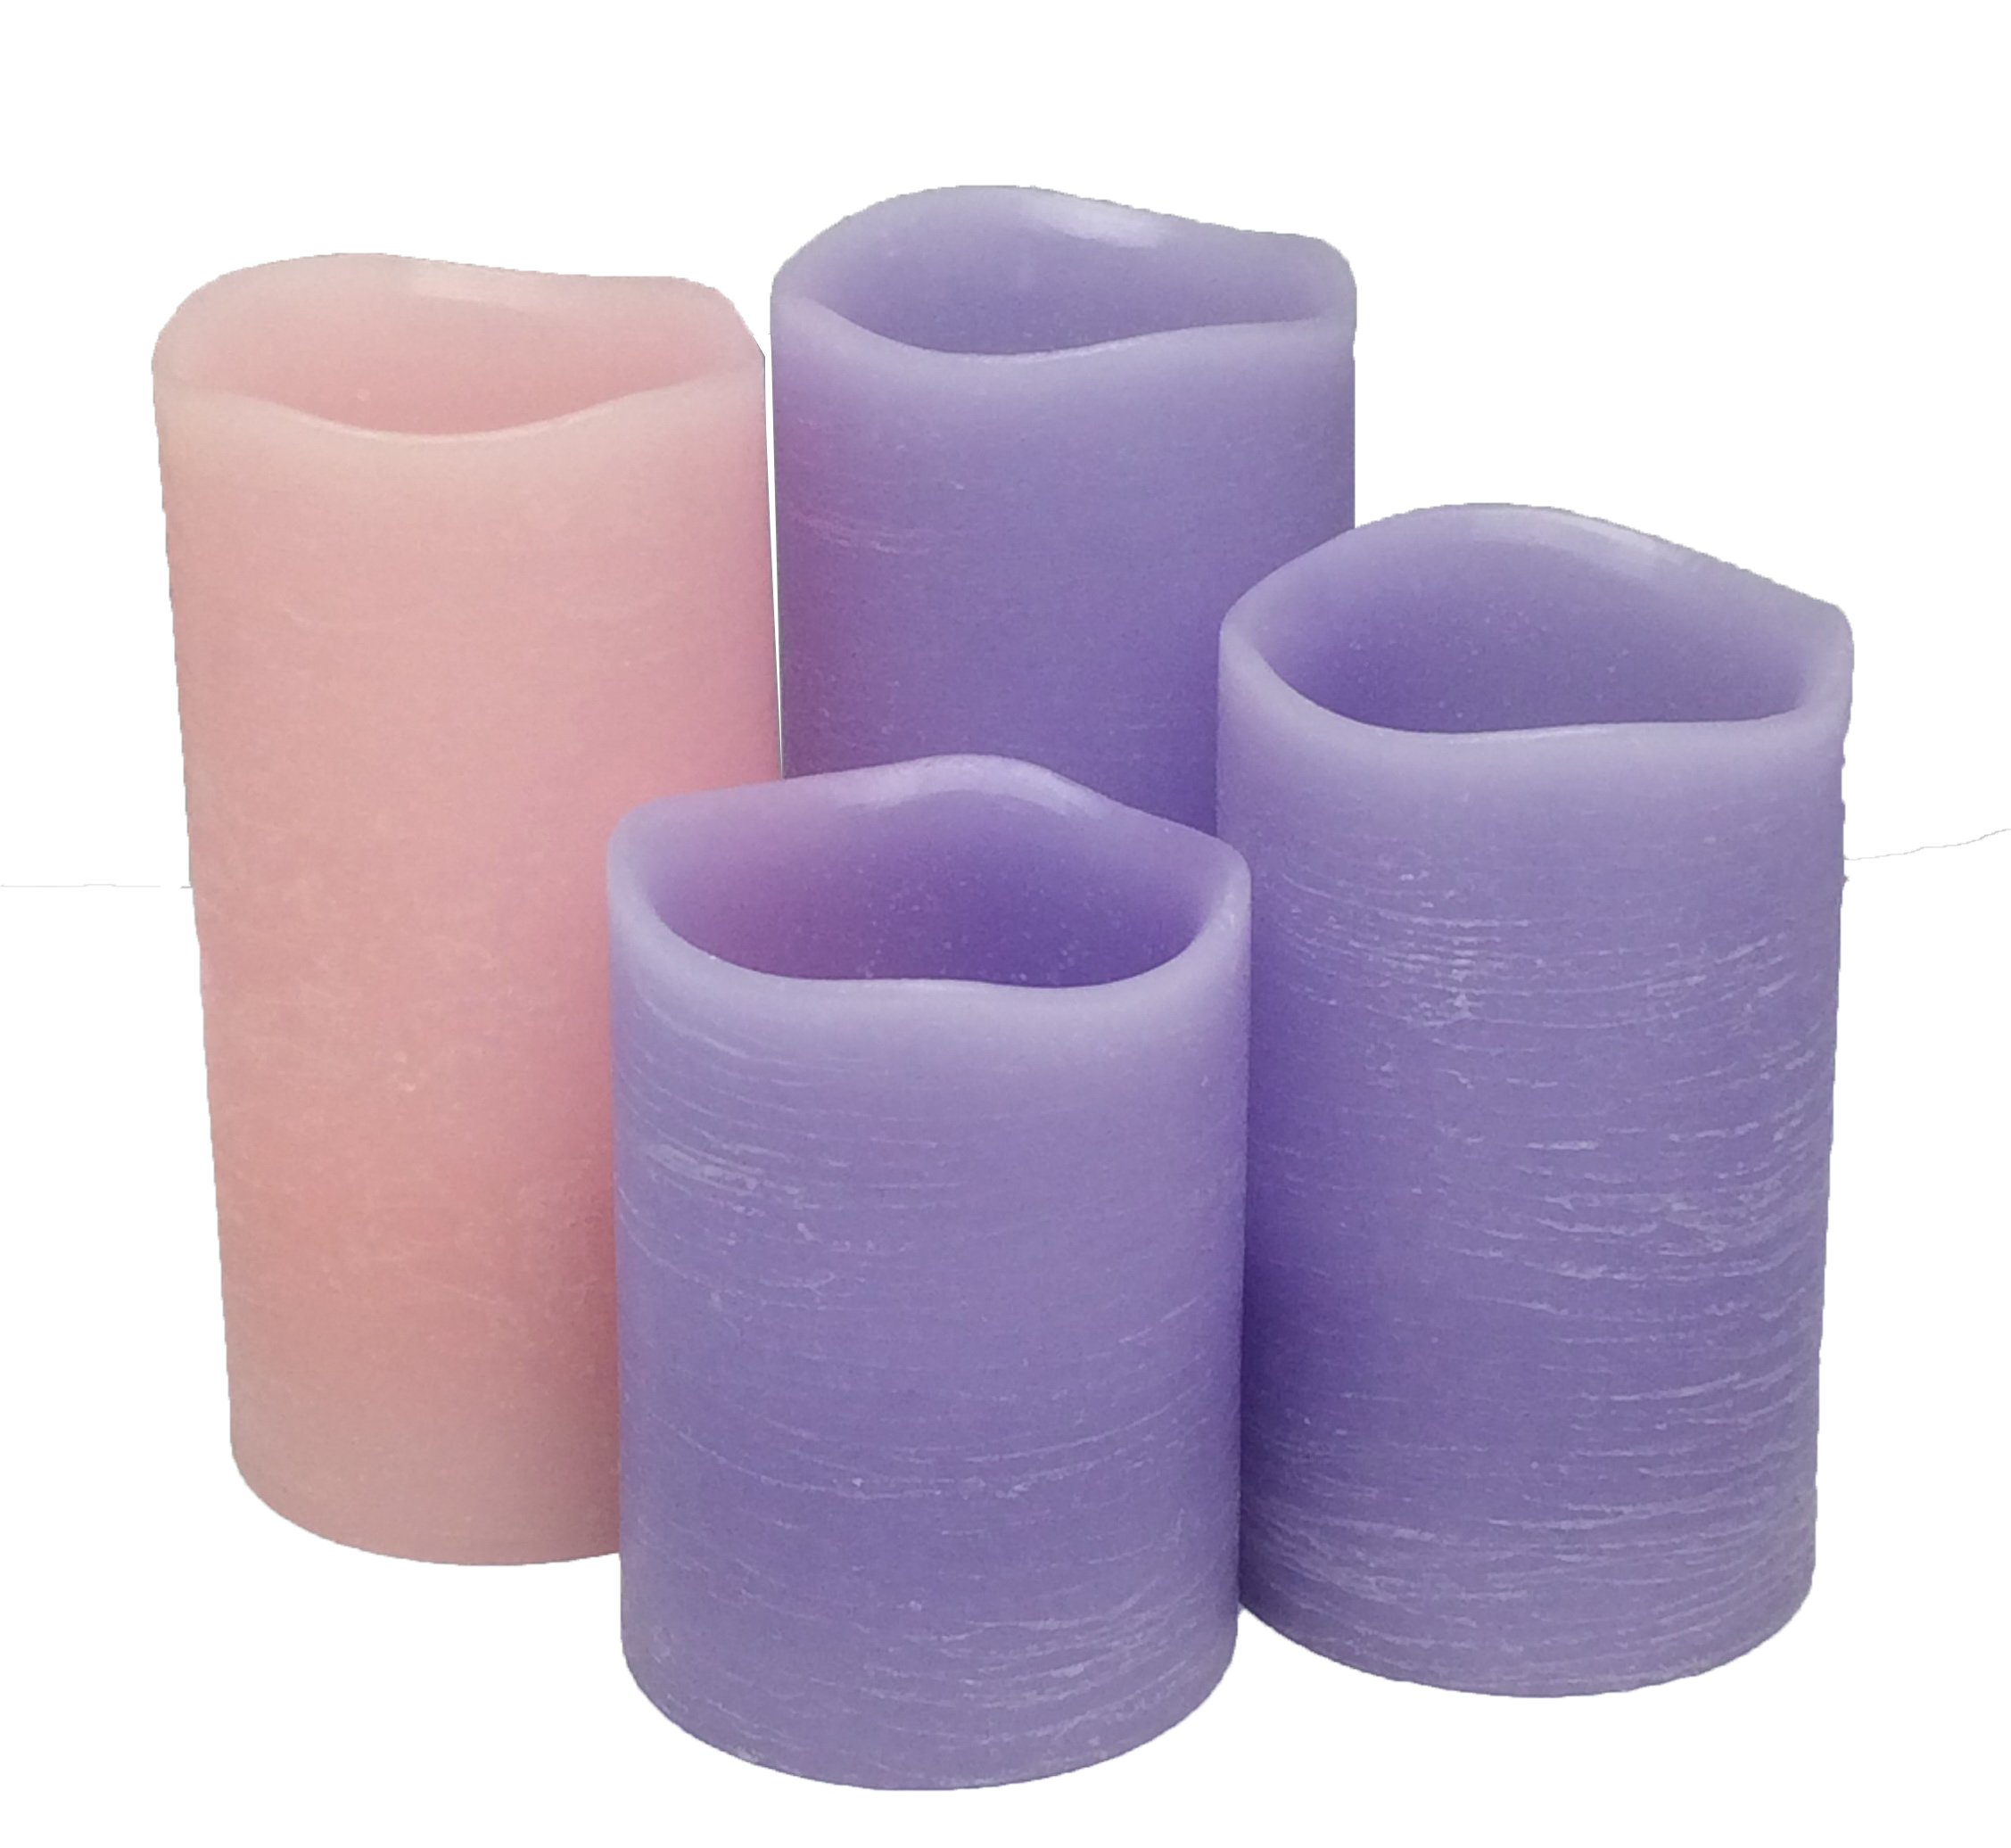 Adoria Advent Led Candles Set of 4-Purple Rustic Wax Handmade 3pcs and Pink 1pc -Unscent with Remote and Timer,Well for Advent Occasion-Home Decor